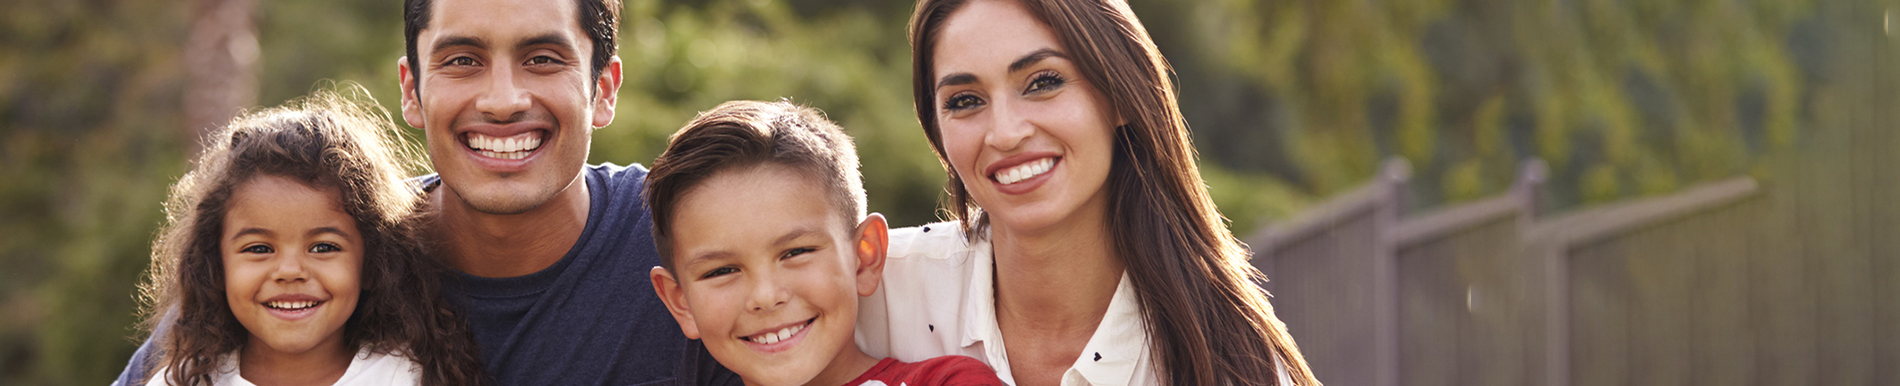 https://www.healthychildren.org/SiteCollectionImage-Homepage-Banners/HispanicFamilyInsuranceCoverage_Banner_es.jpg